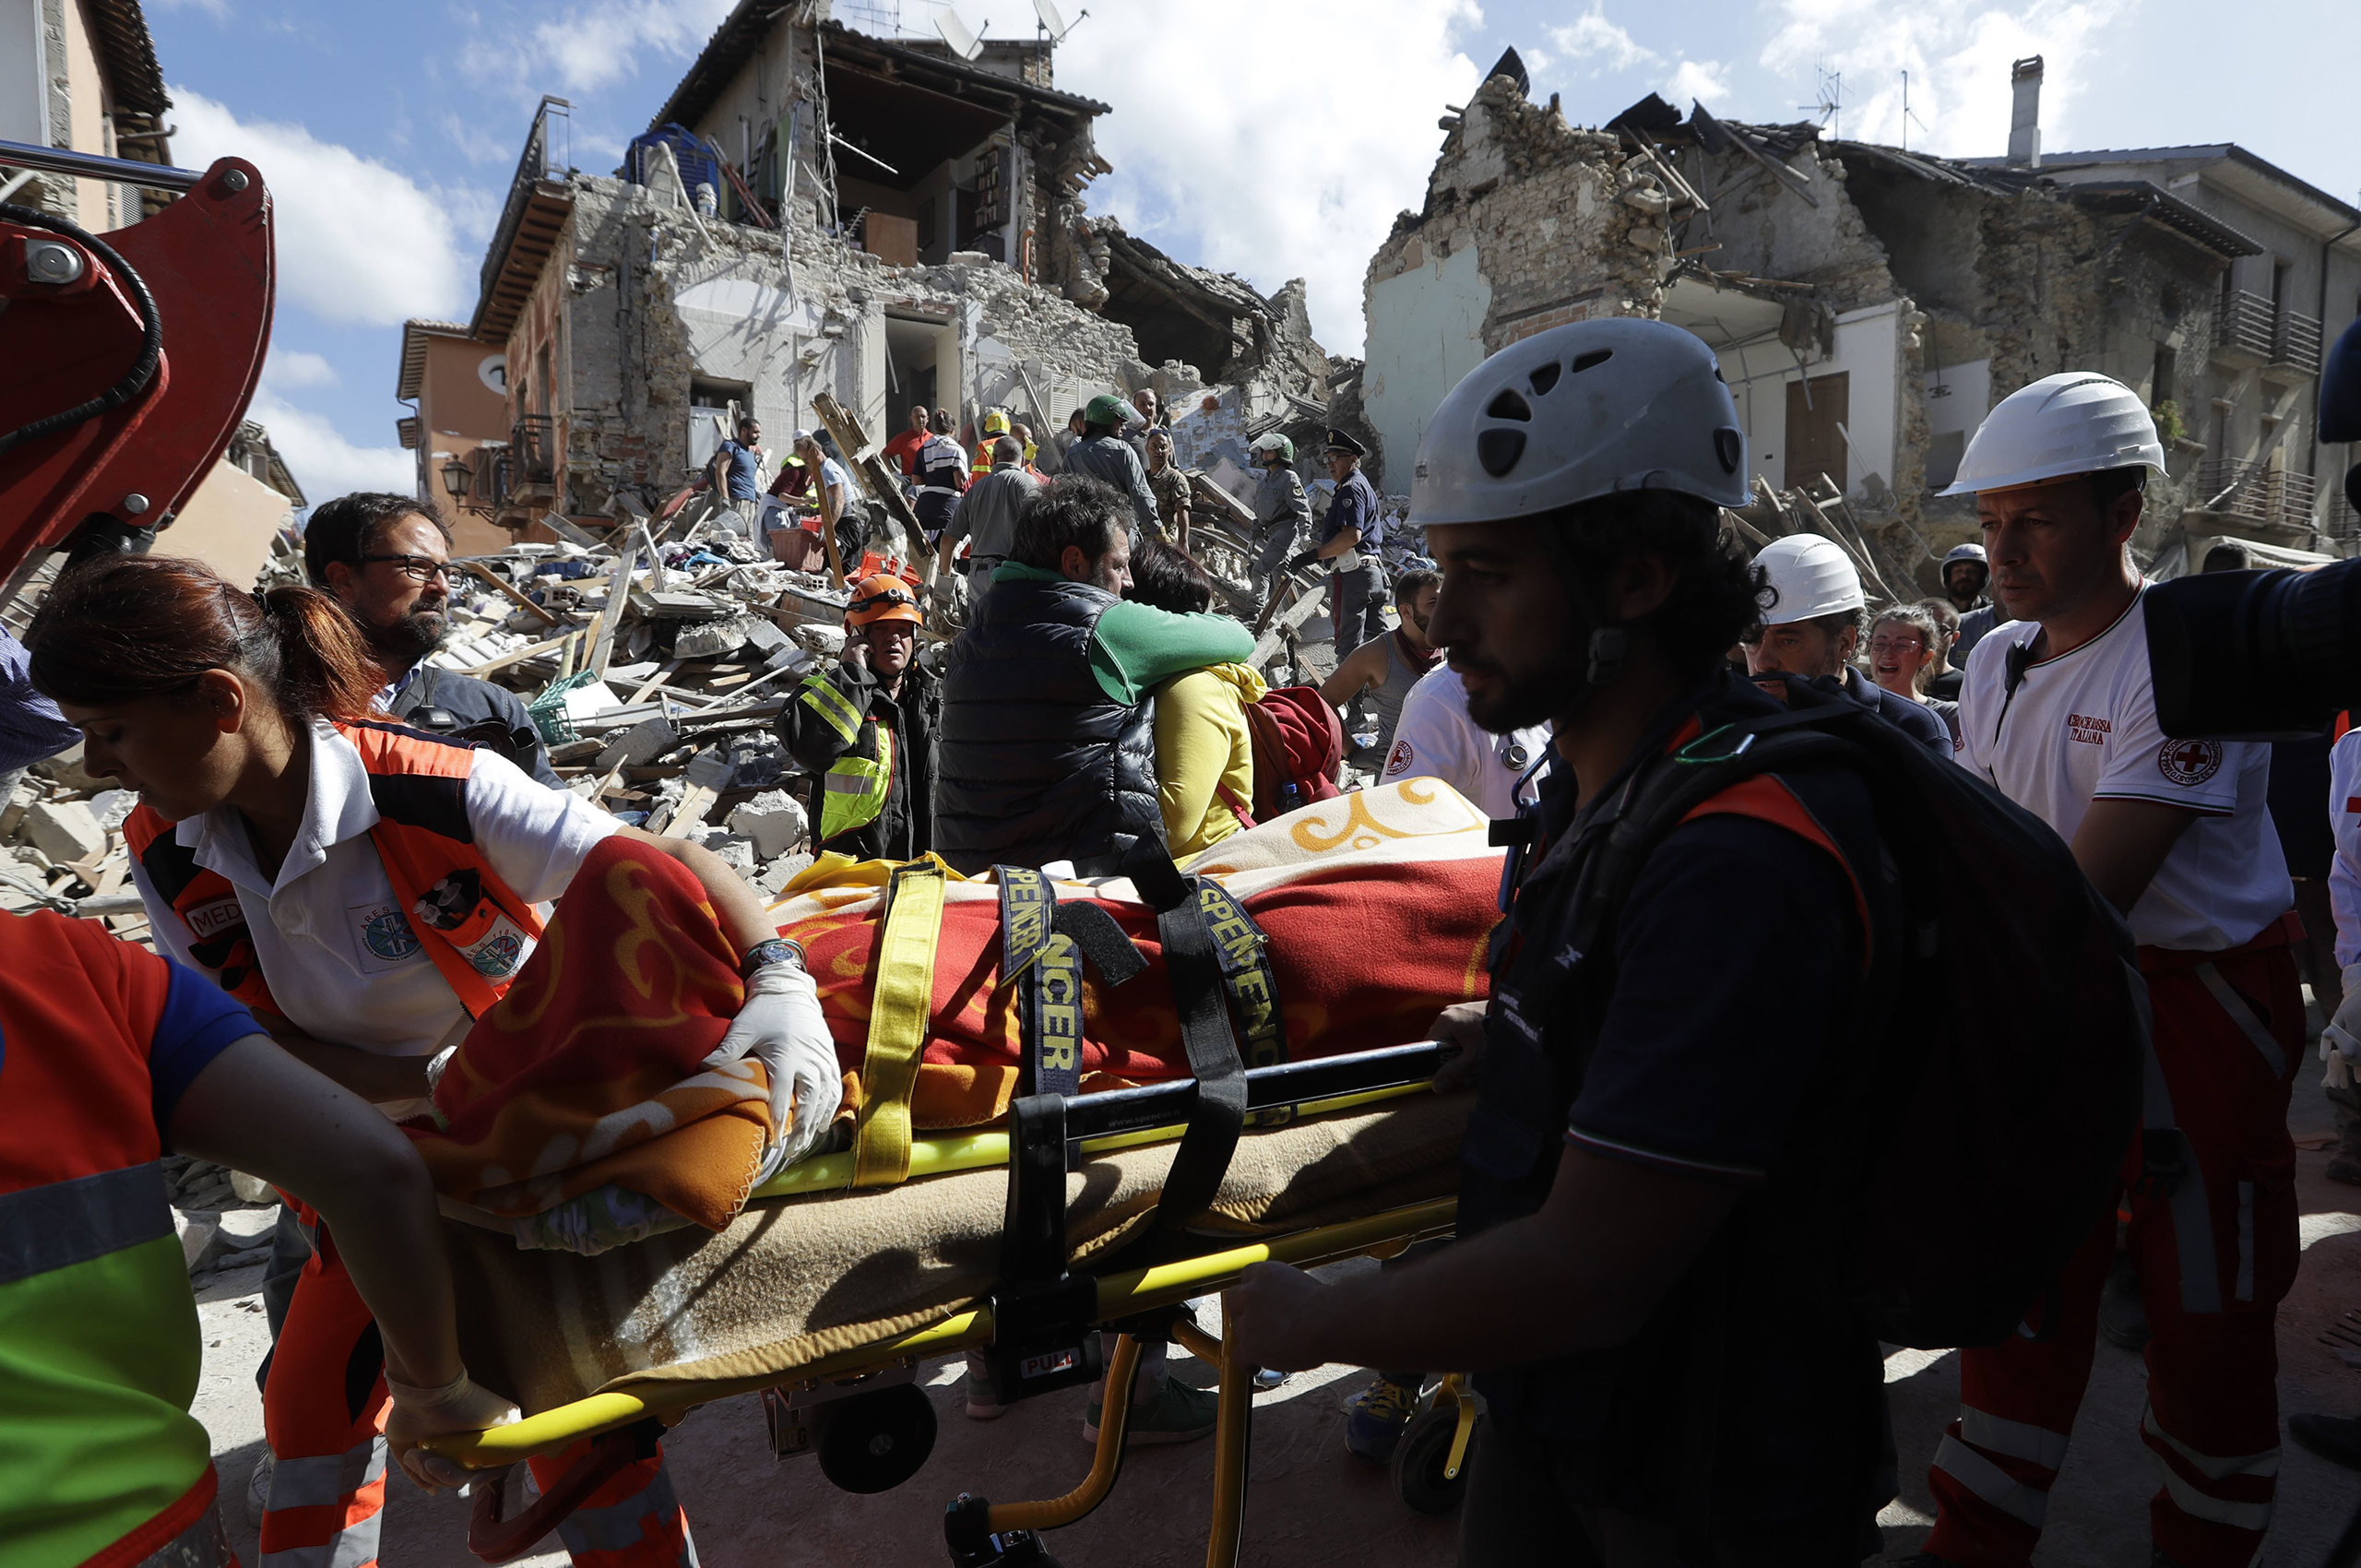 A victim is pulled out of the rubble following an earthquake in Amatrice Italy, Aug. 24, 2016.